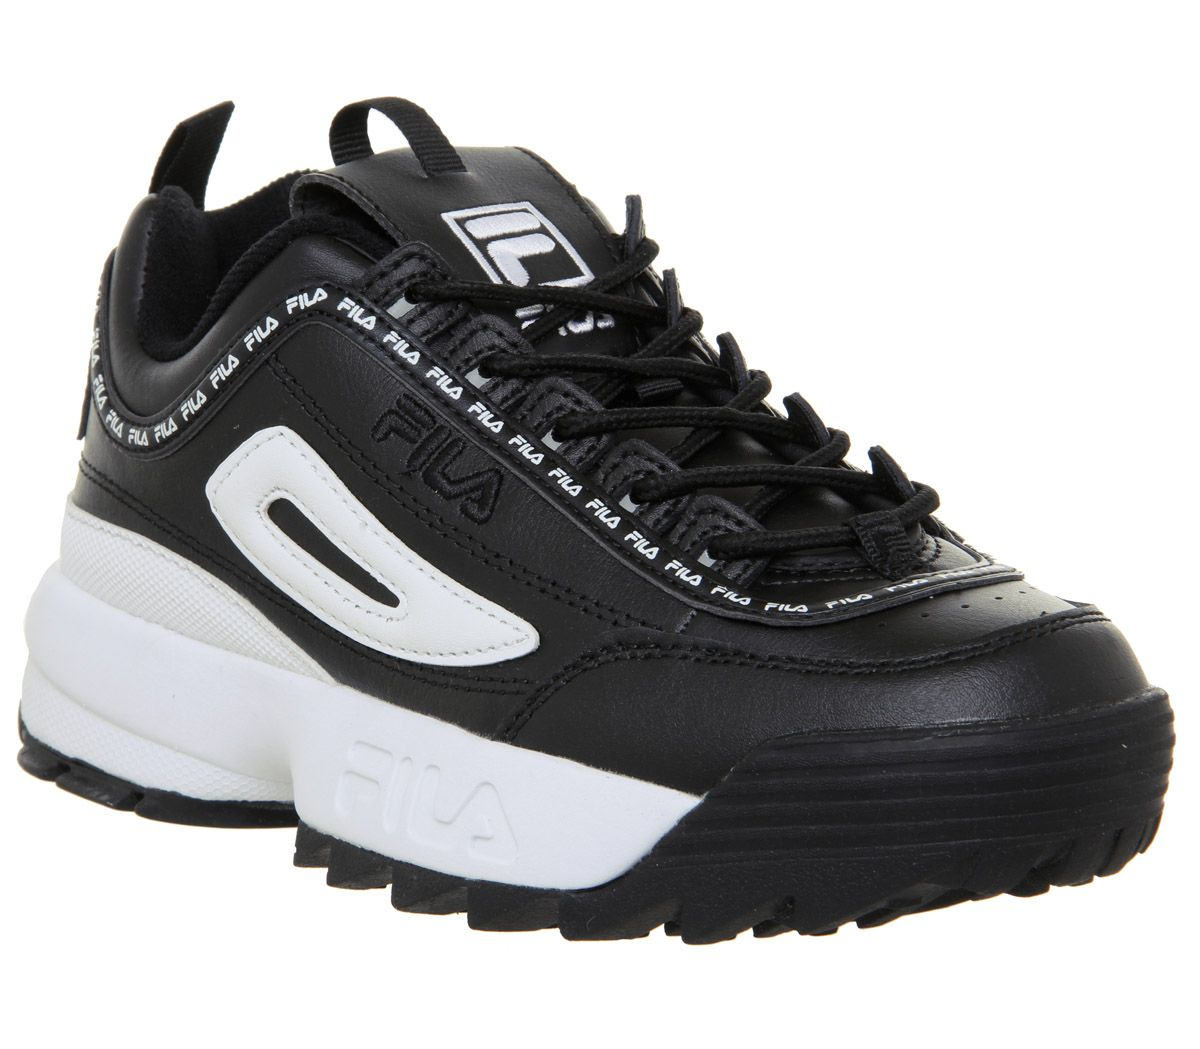 420c39337aab Sentinel Womens Fila Black Leather Lace-up Trainers Size UK 3  Ex-Display